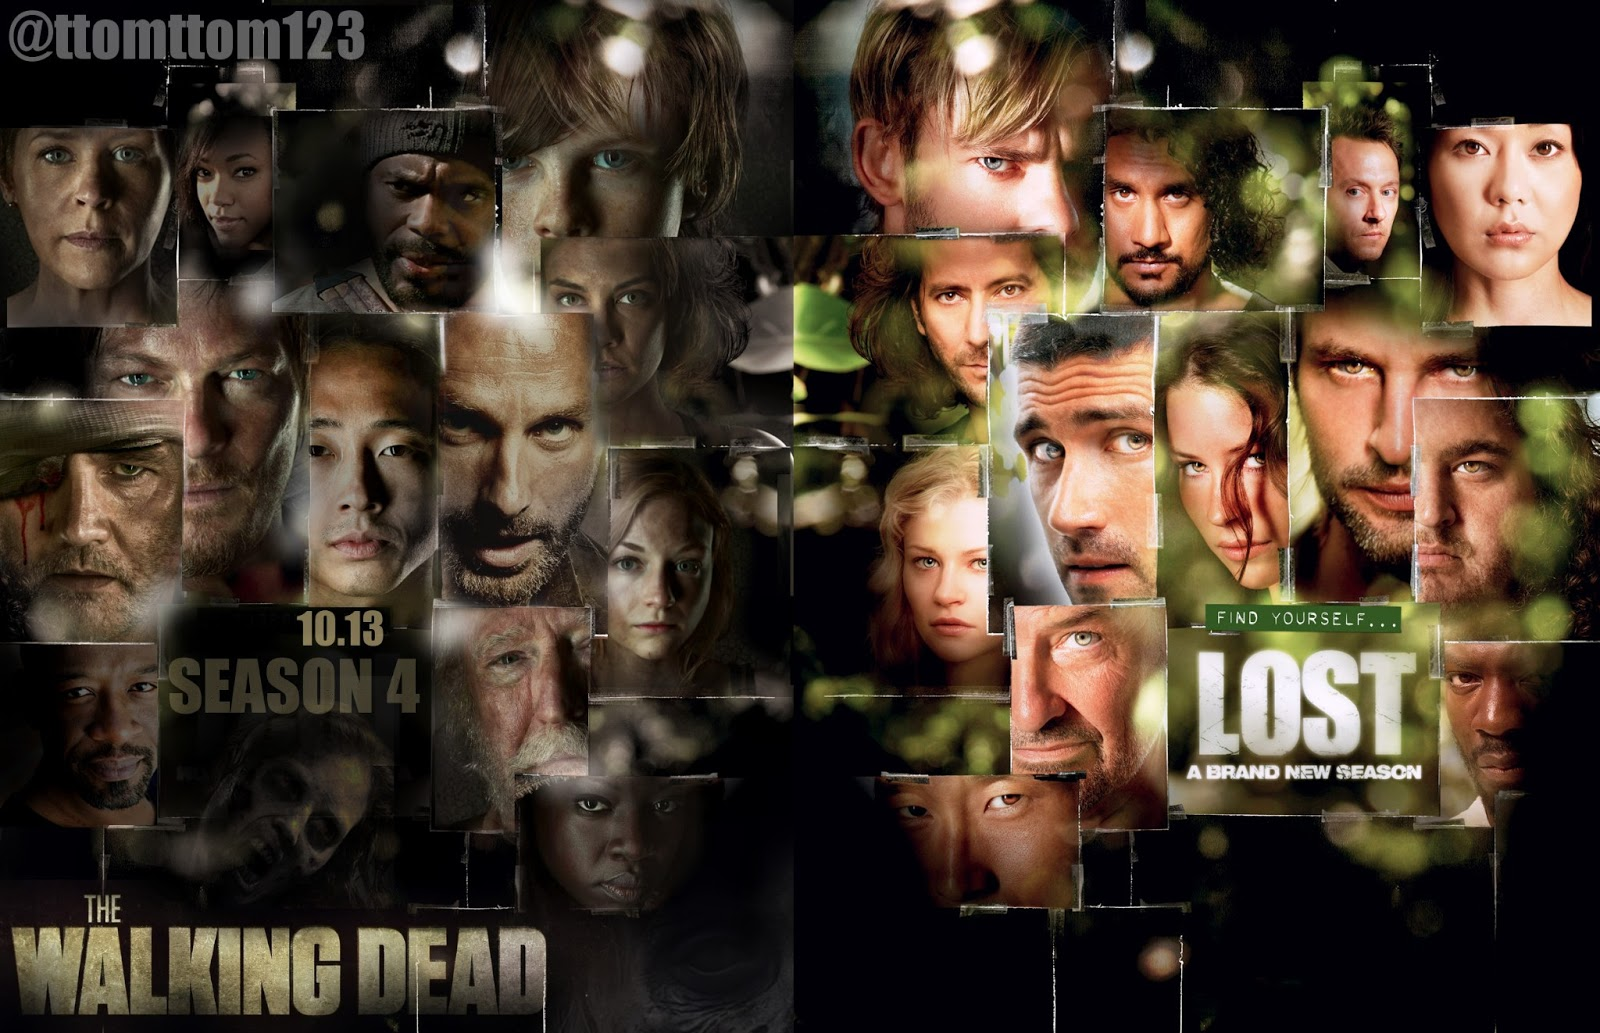 LOST vs The Walking Dead by Tomskee123